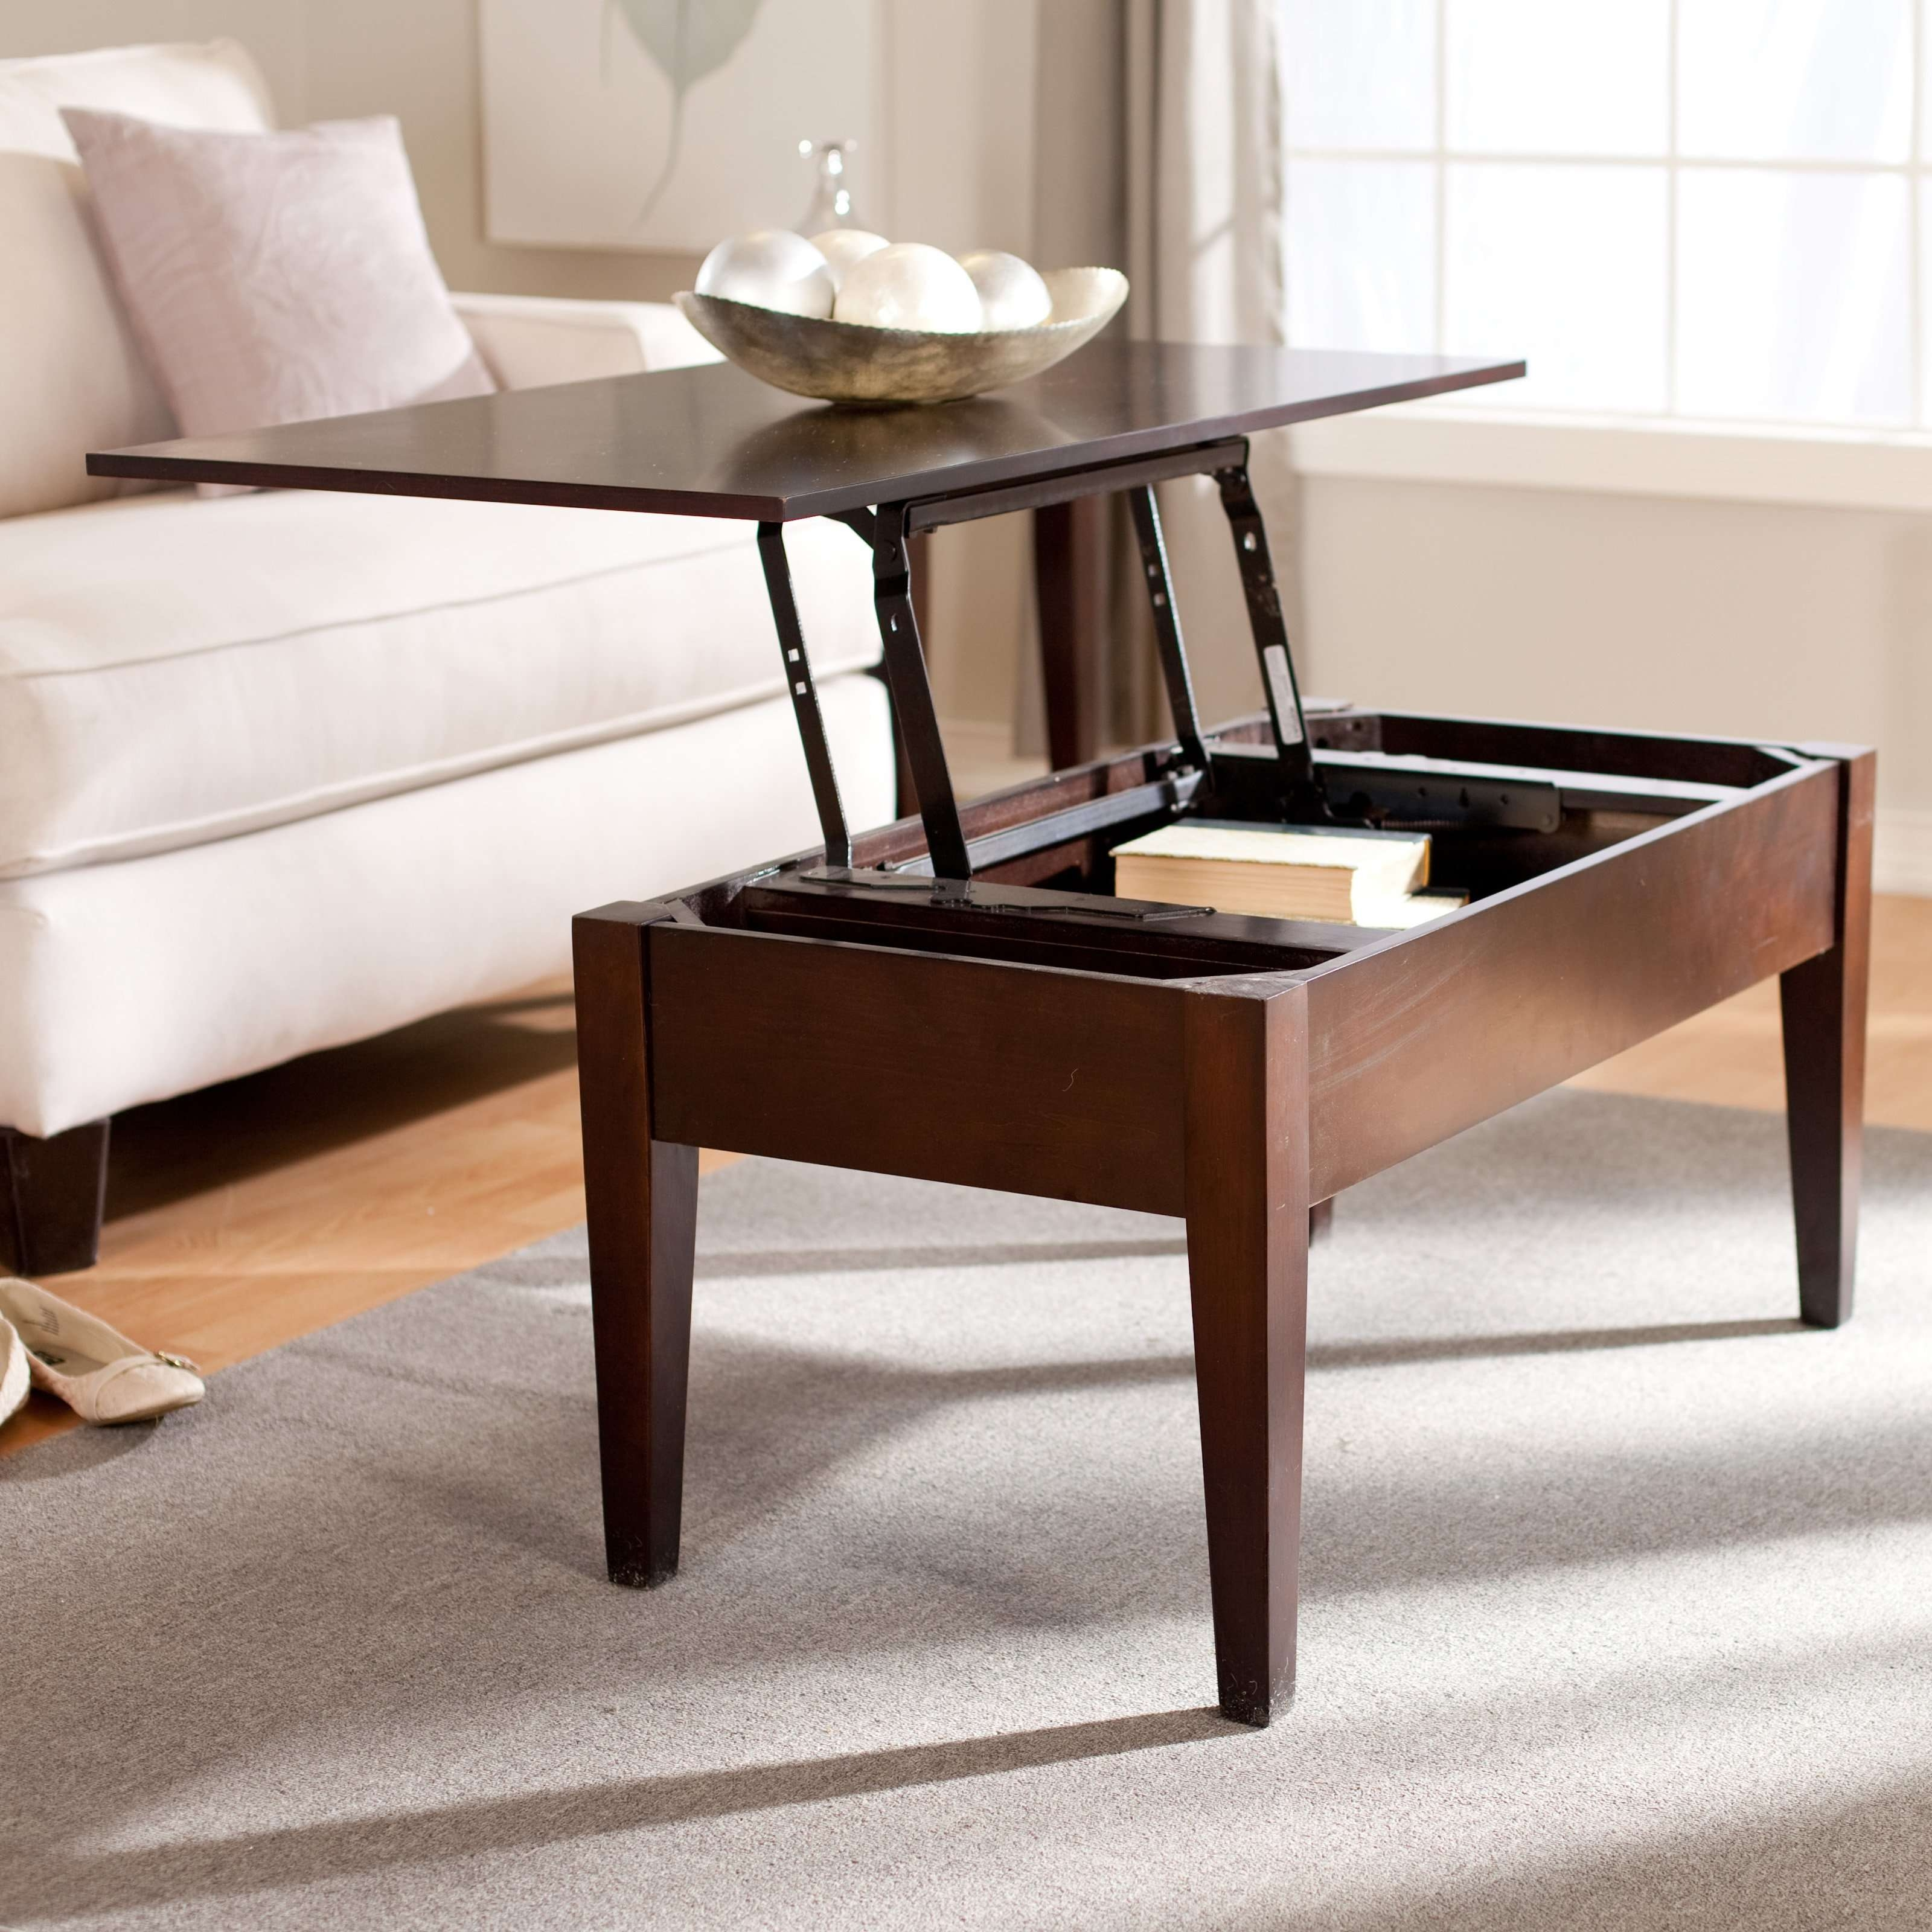 Trendy Pull Up Coffee Tables In White Fabric Sofa With Tiny Lift Top Coffee Table On Grey Accent (View 13 of 20)